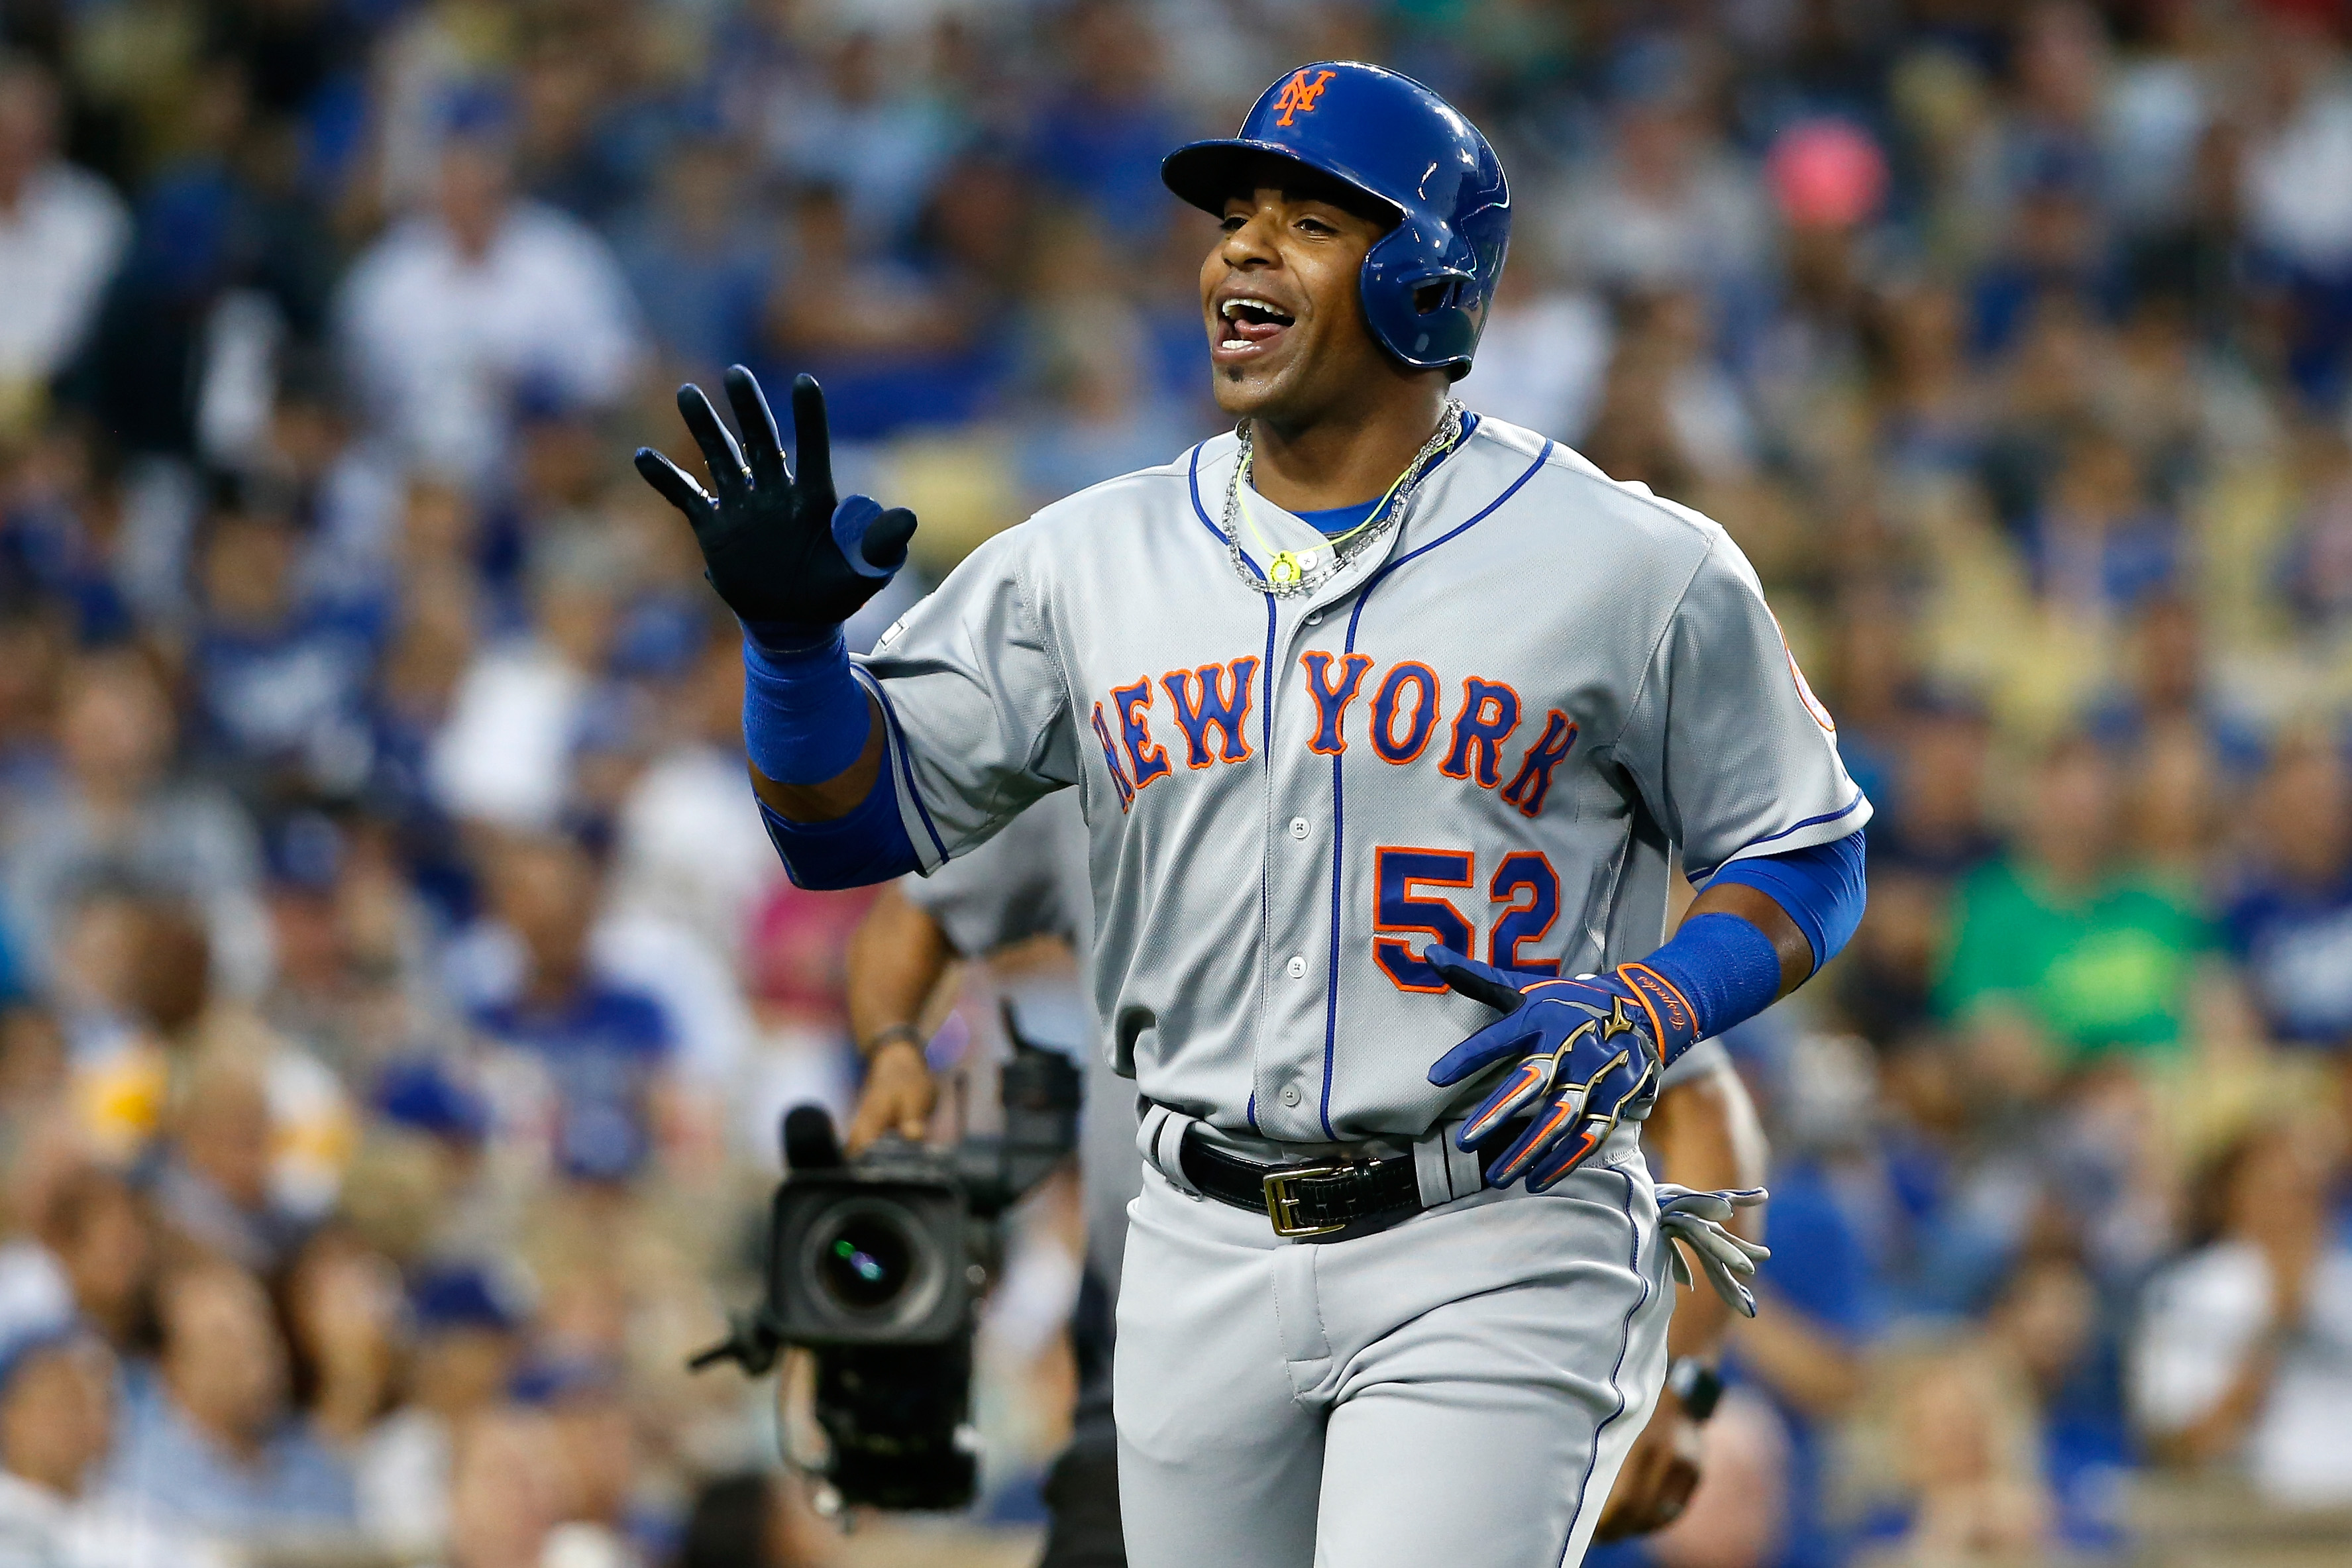 The Orioles offered Yoenis Cespedes $90 million and are tired of waiting on Chris Davis